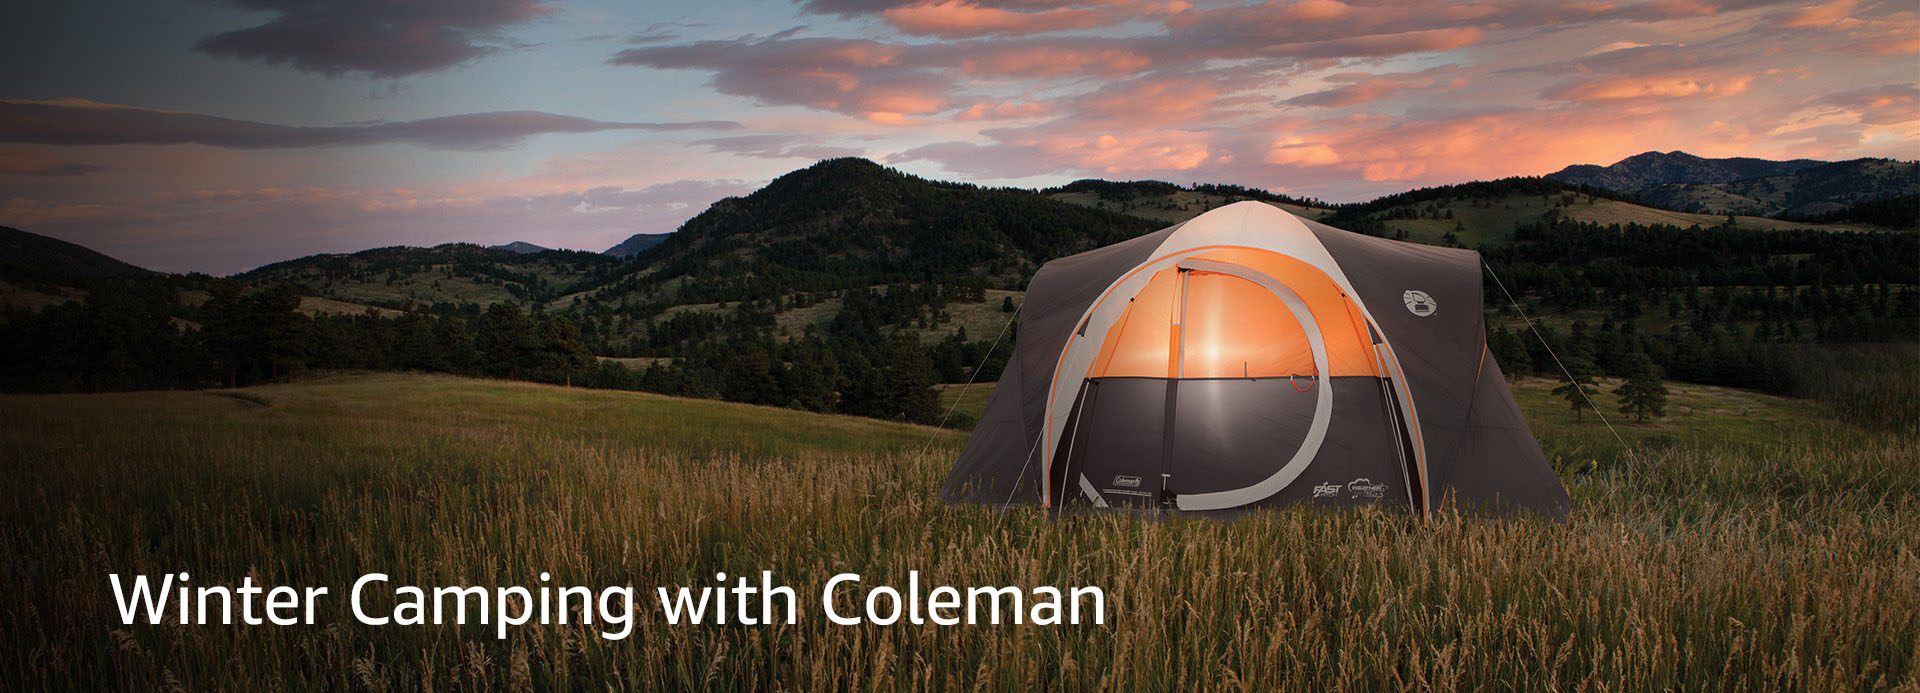 Winter Camping With Coleman